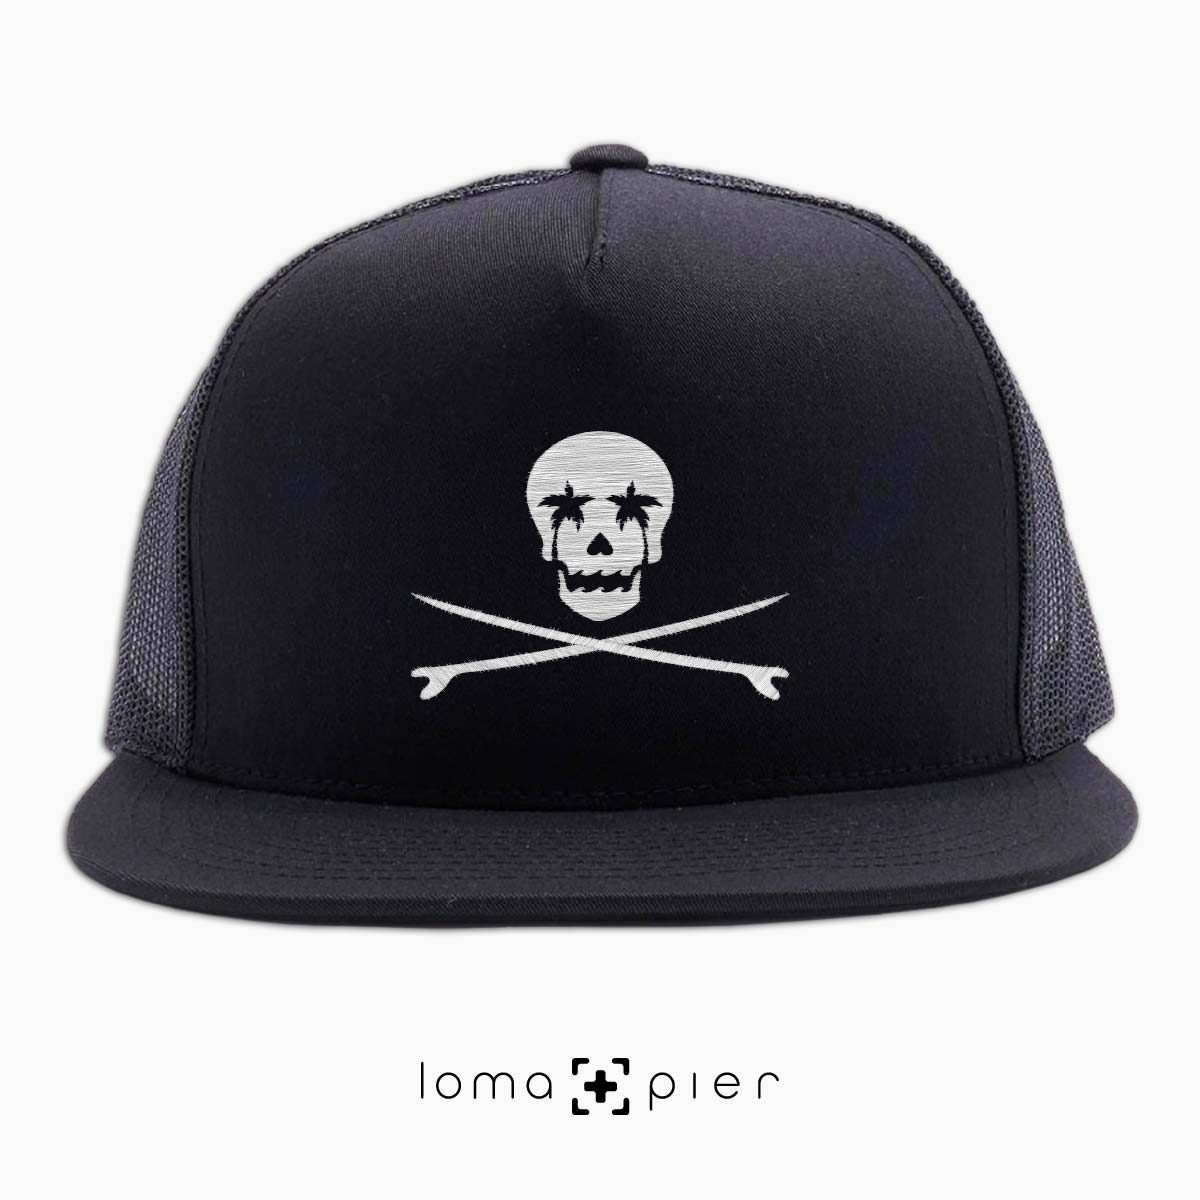 SKULL N' BOARDS redondo beach netback hats in black by loma+pier hat store